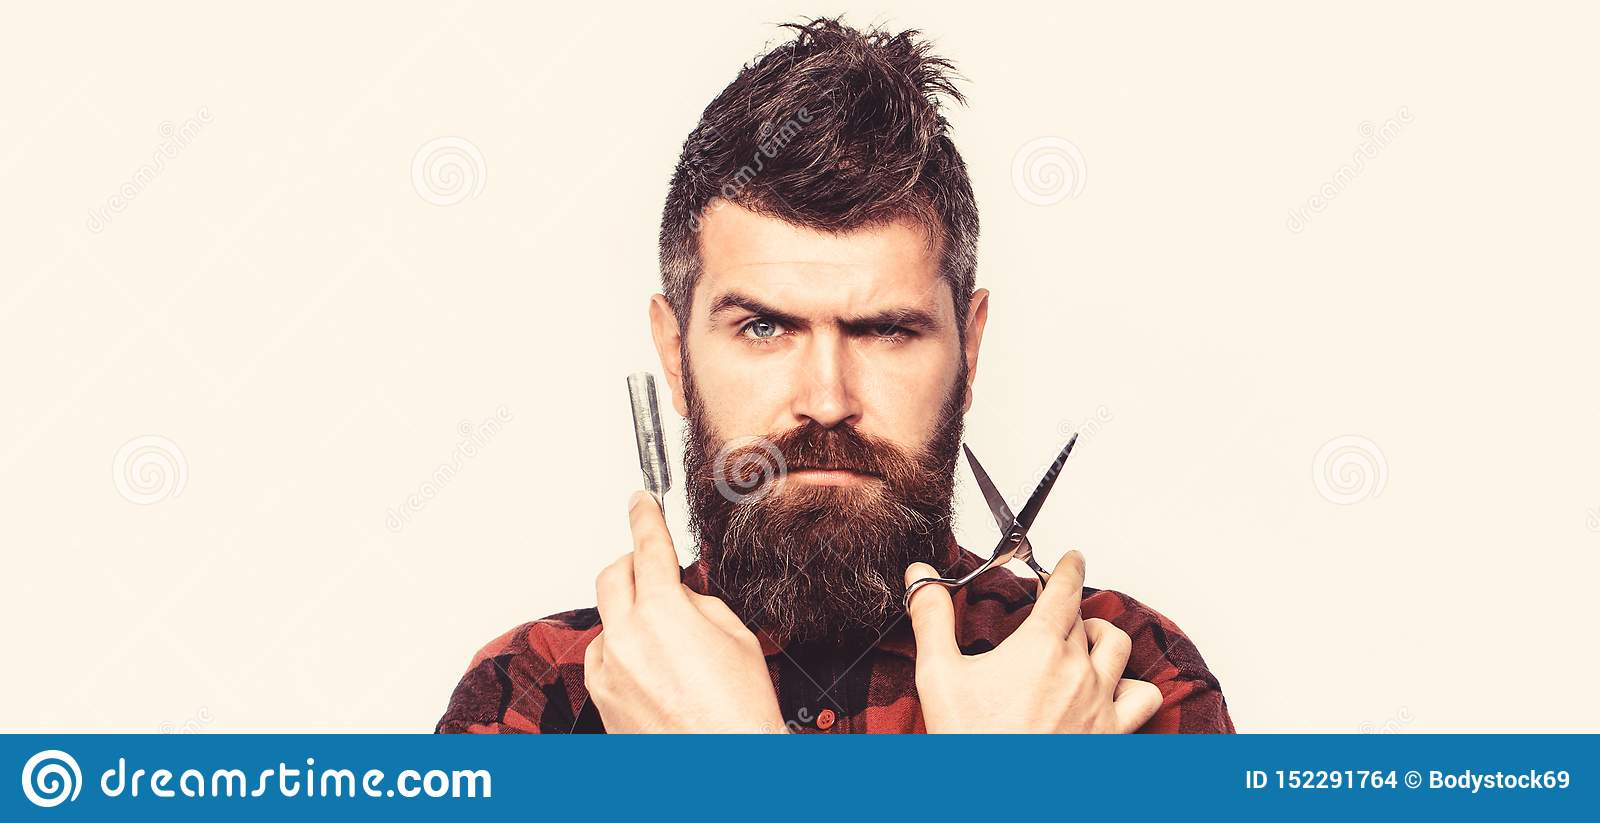 Barber scissors and straight razor, barber shop. Vintage barbershop, shaving. Mustache men. Beard macho man. Brutal guy